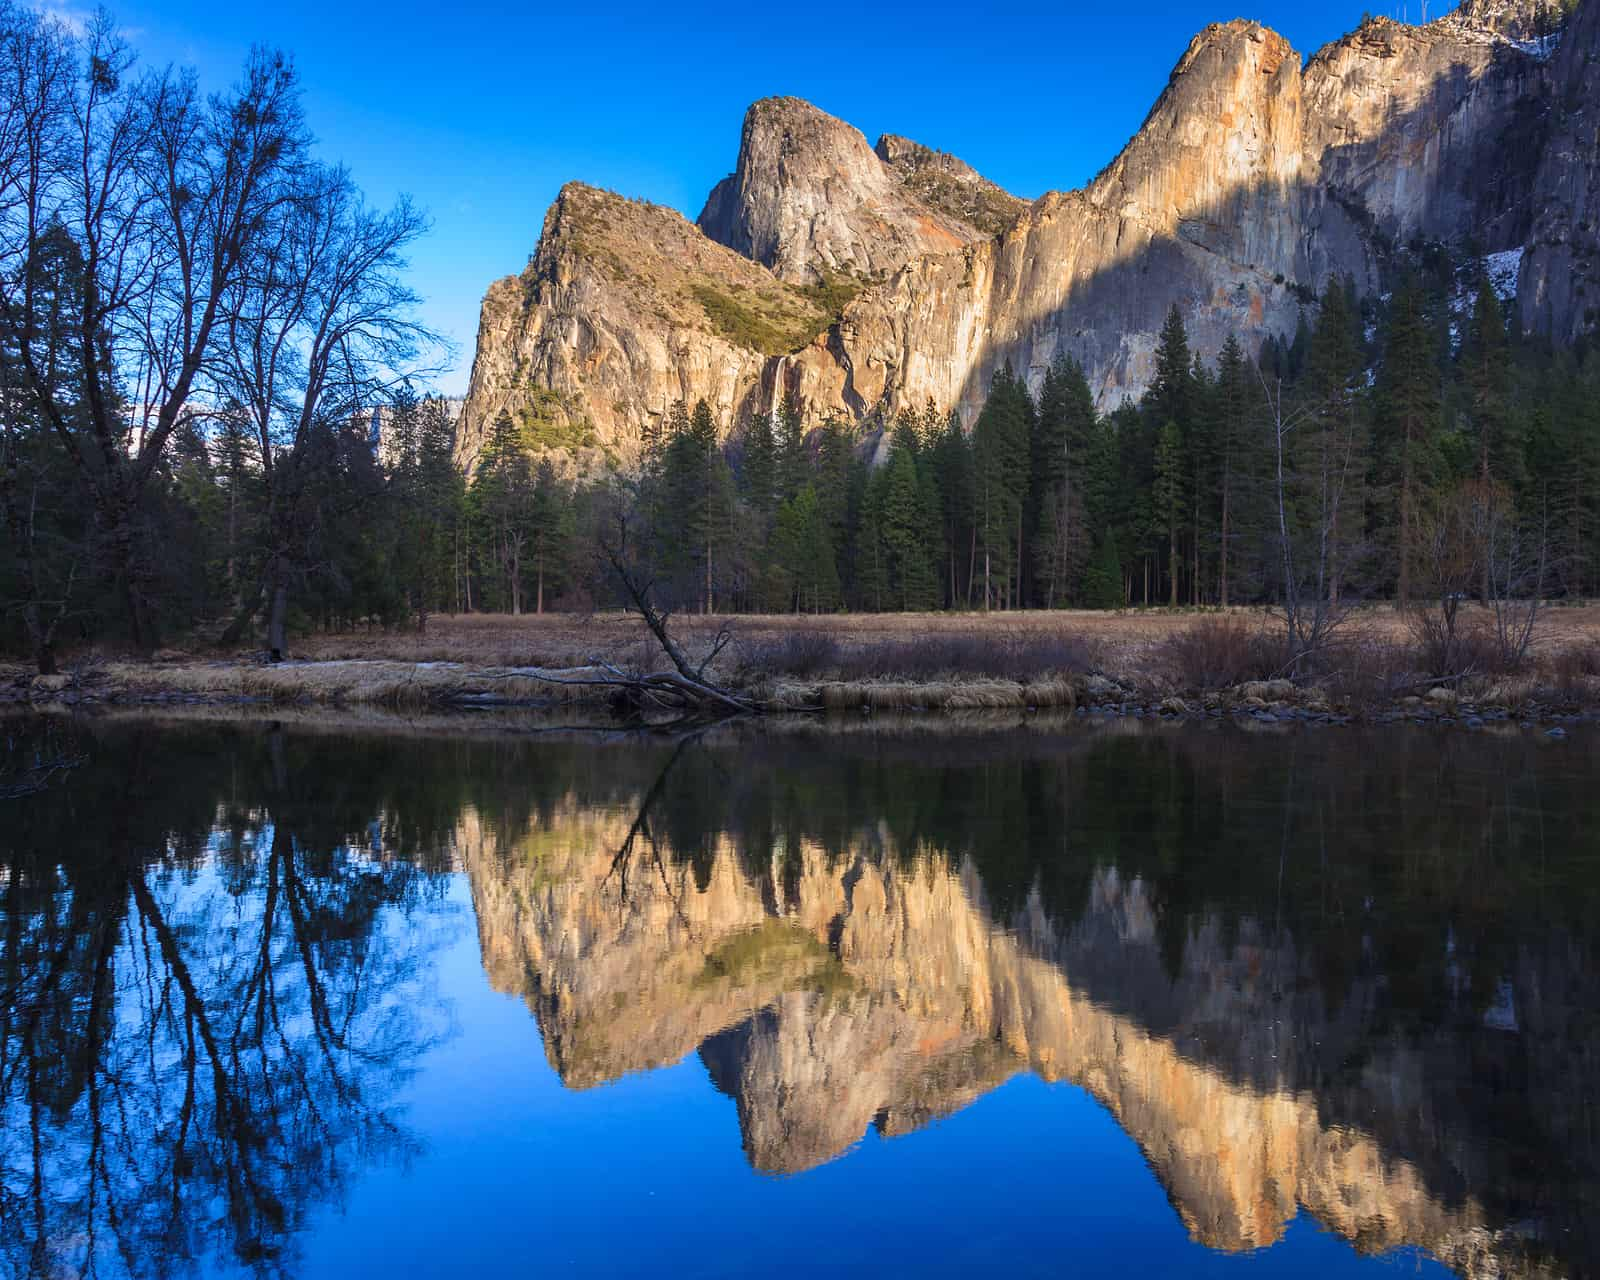 http://www.theparadigmrealtygroup.com/wp-content/uploads/2017/10/bigstock-Cathedral-Rocks-Reflections-40631113.jpg